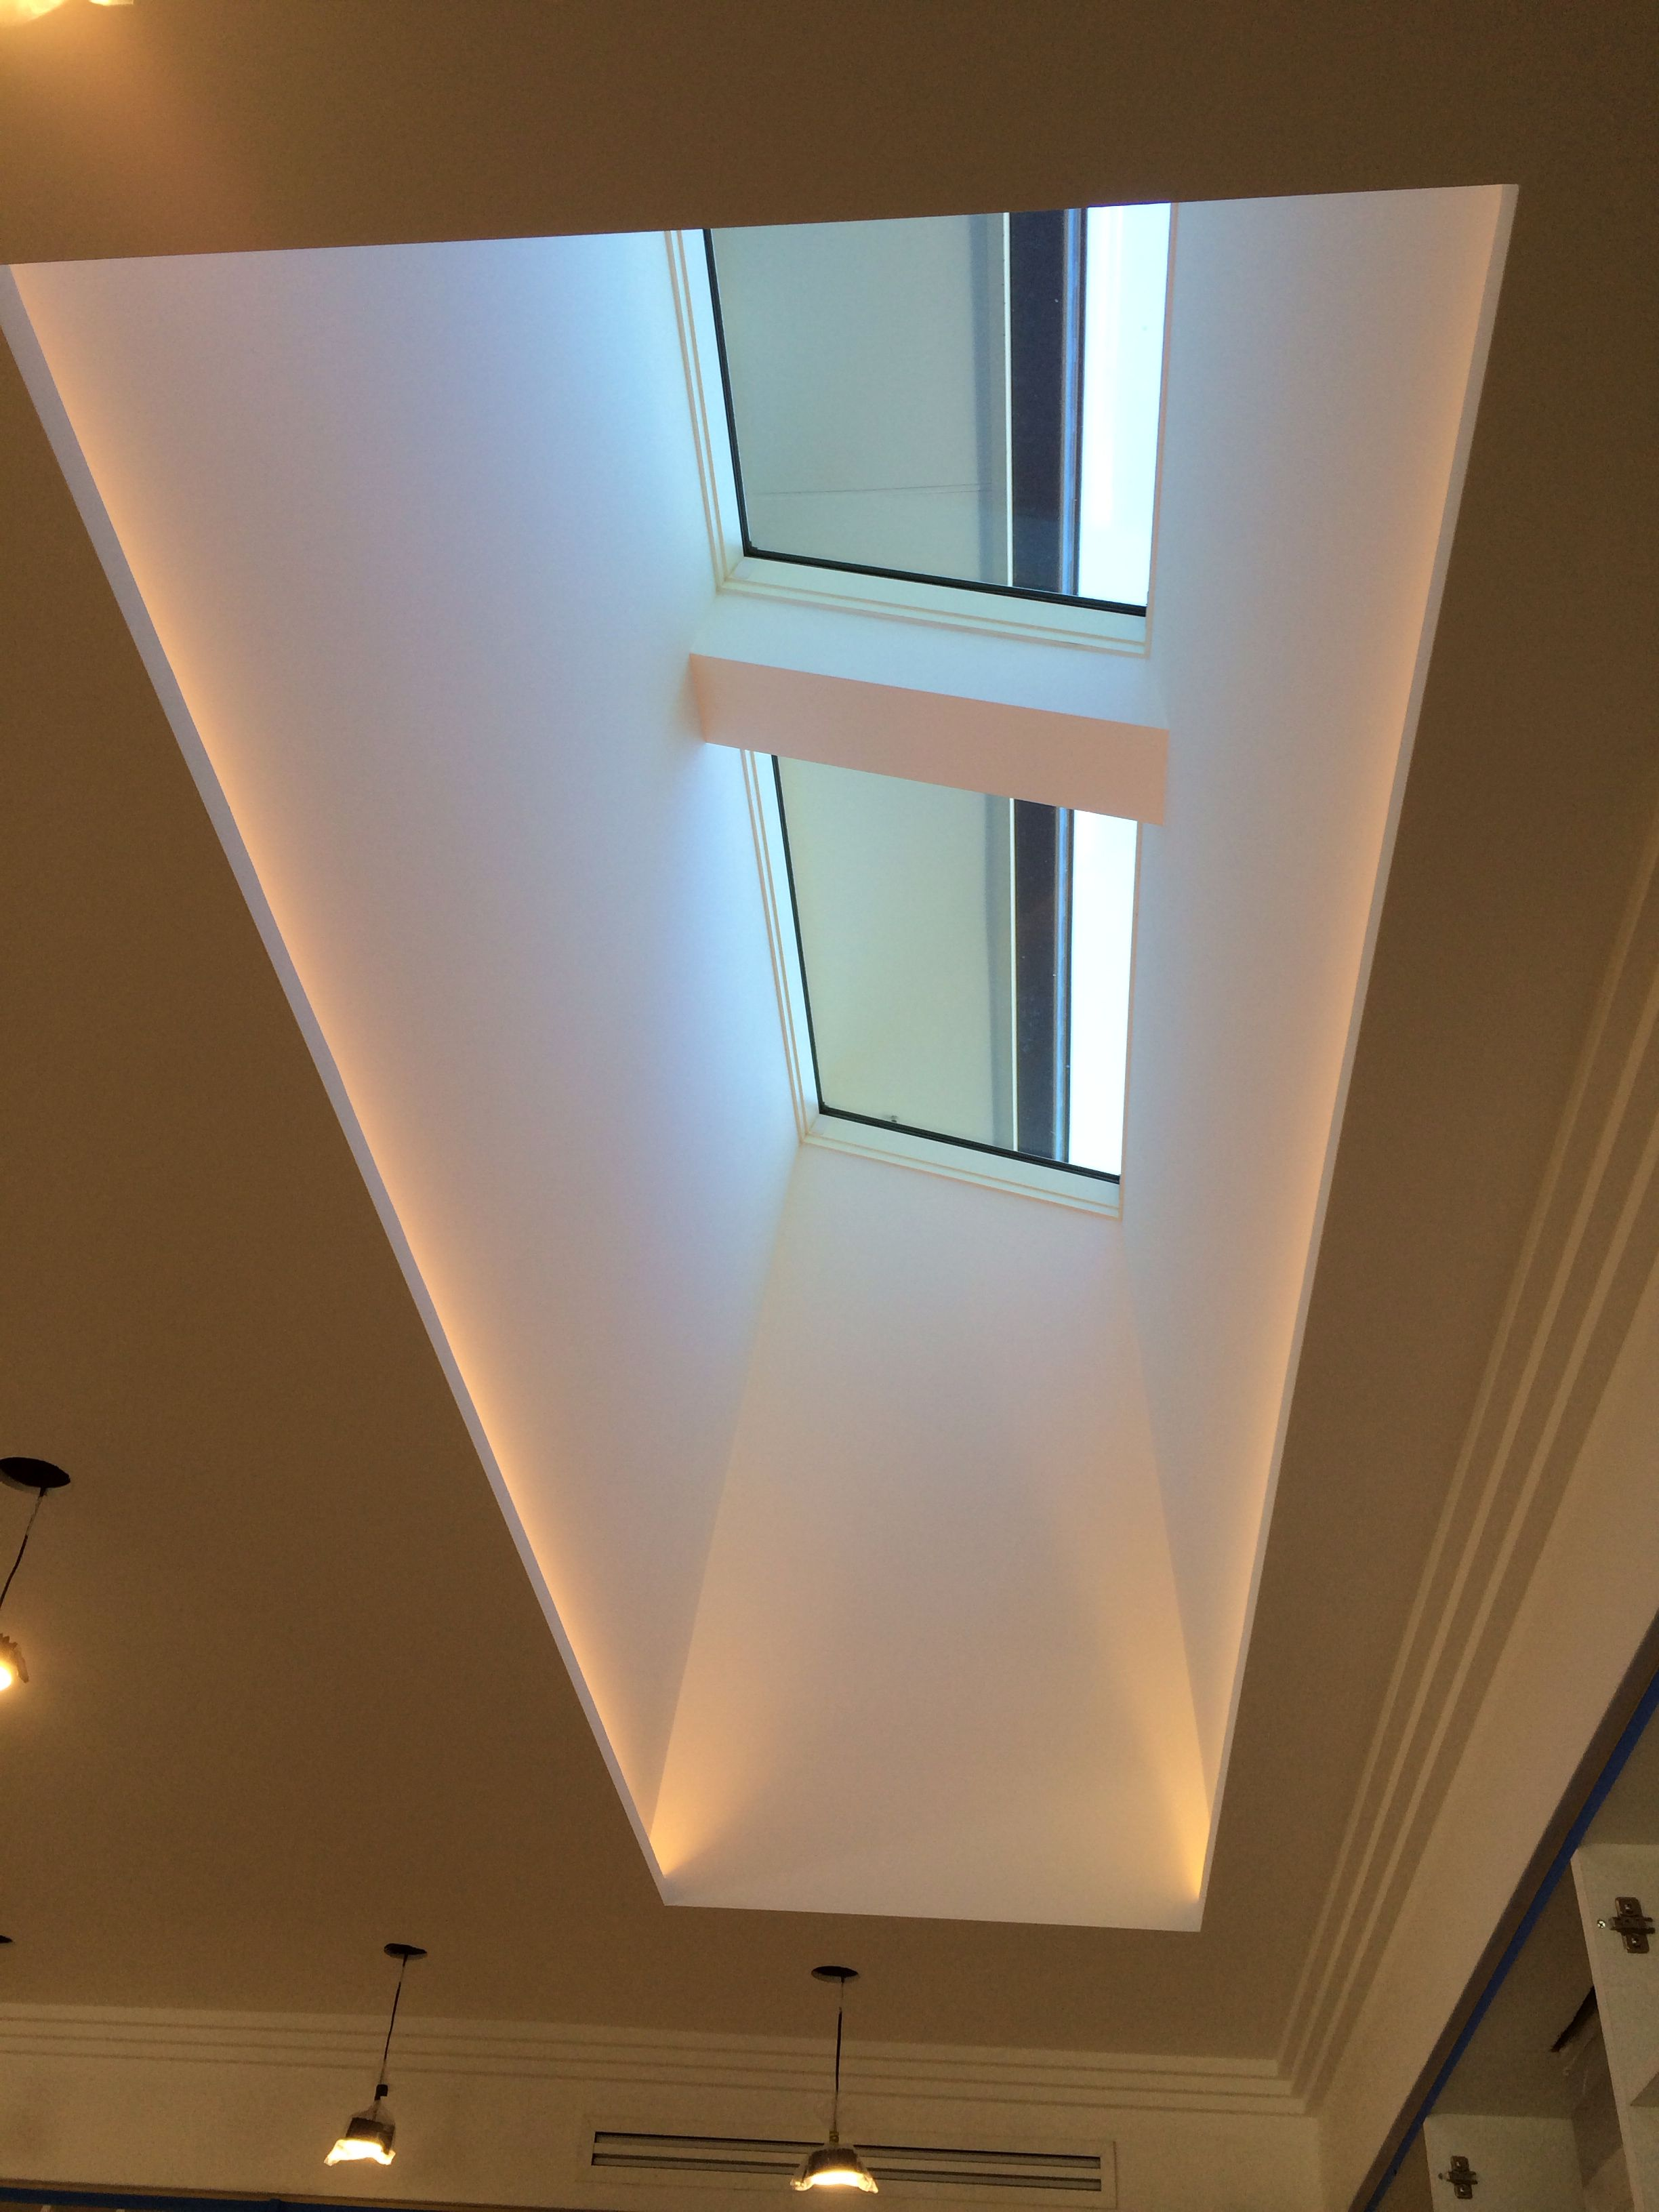 Cove lighting led - Skylight And Light Well With Led Strips Hidden Along The Two Long Edges Looks Like